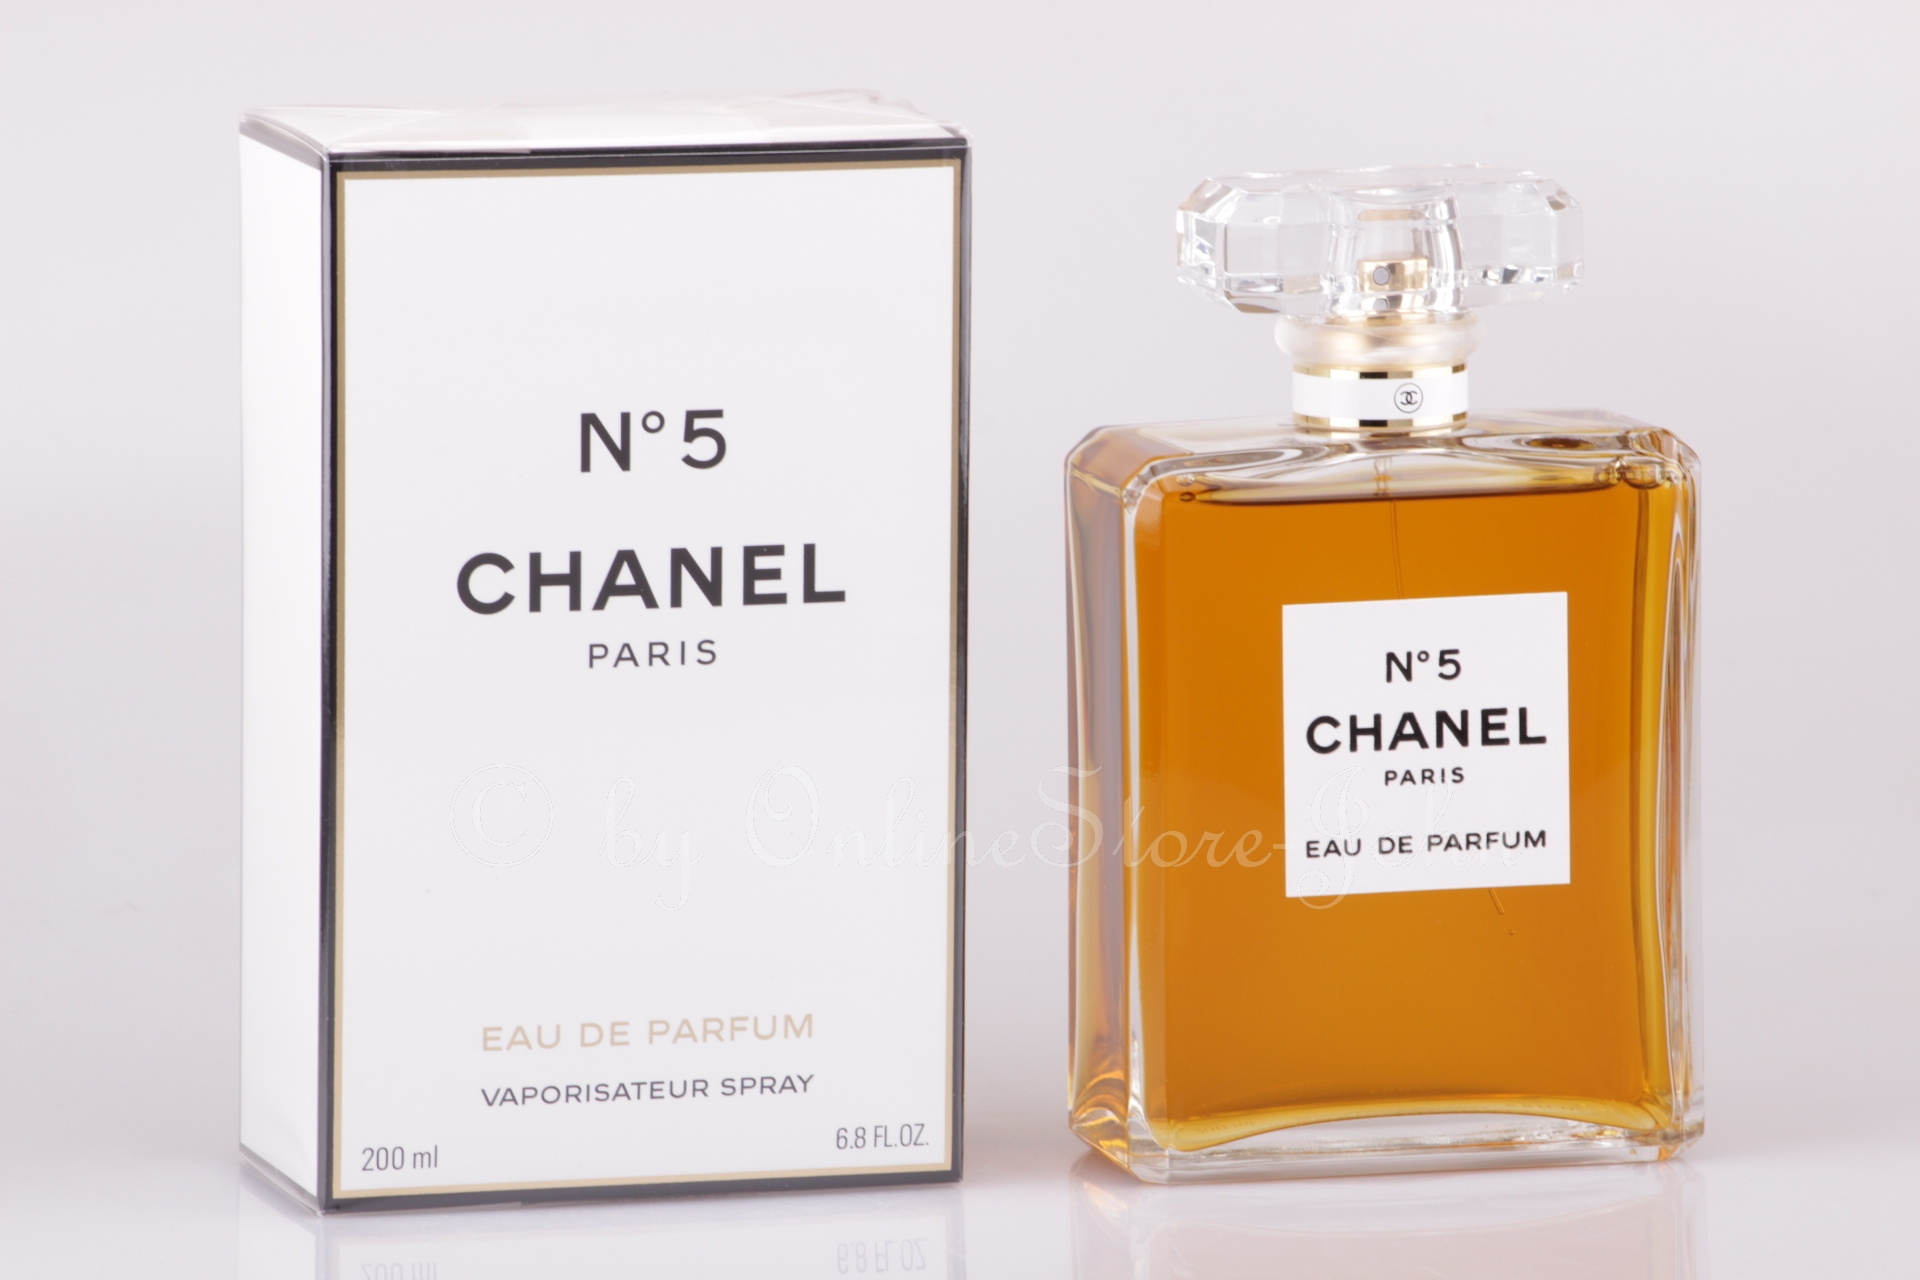 chanel no 5 200ml edp eau de parfum. Black Bedroom Furniture Sets. Home Design Ideas